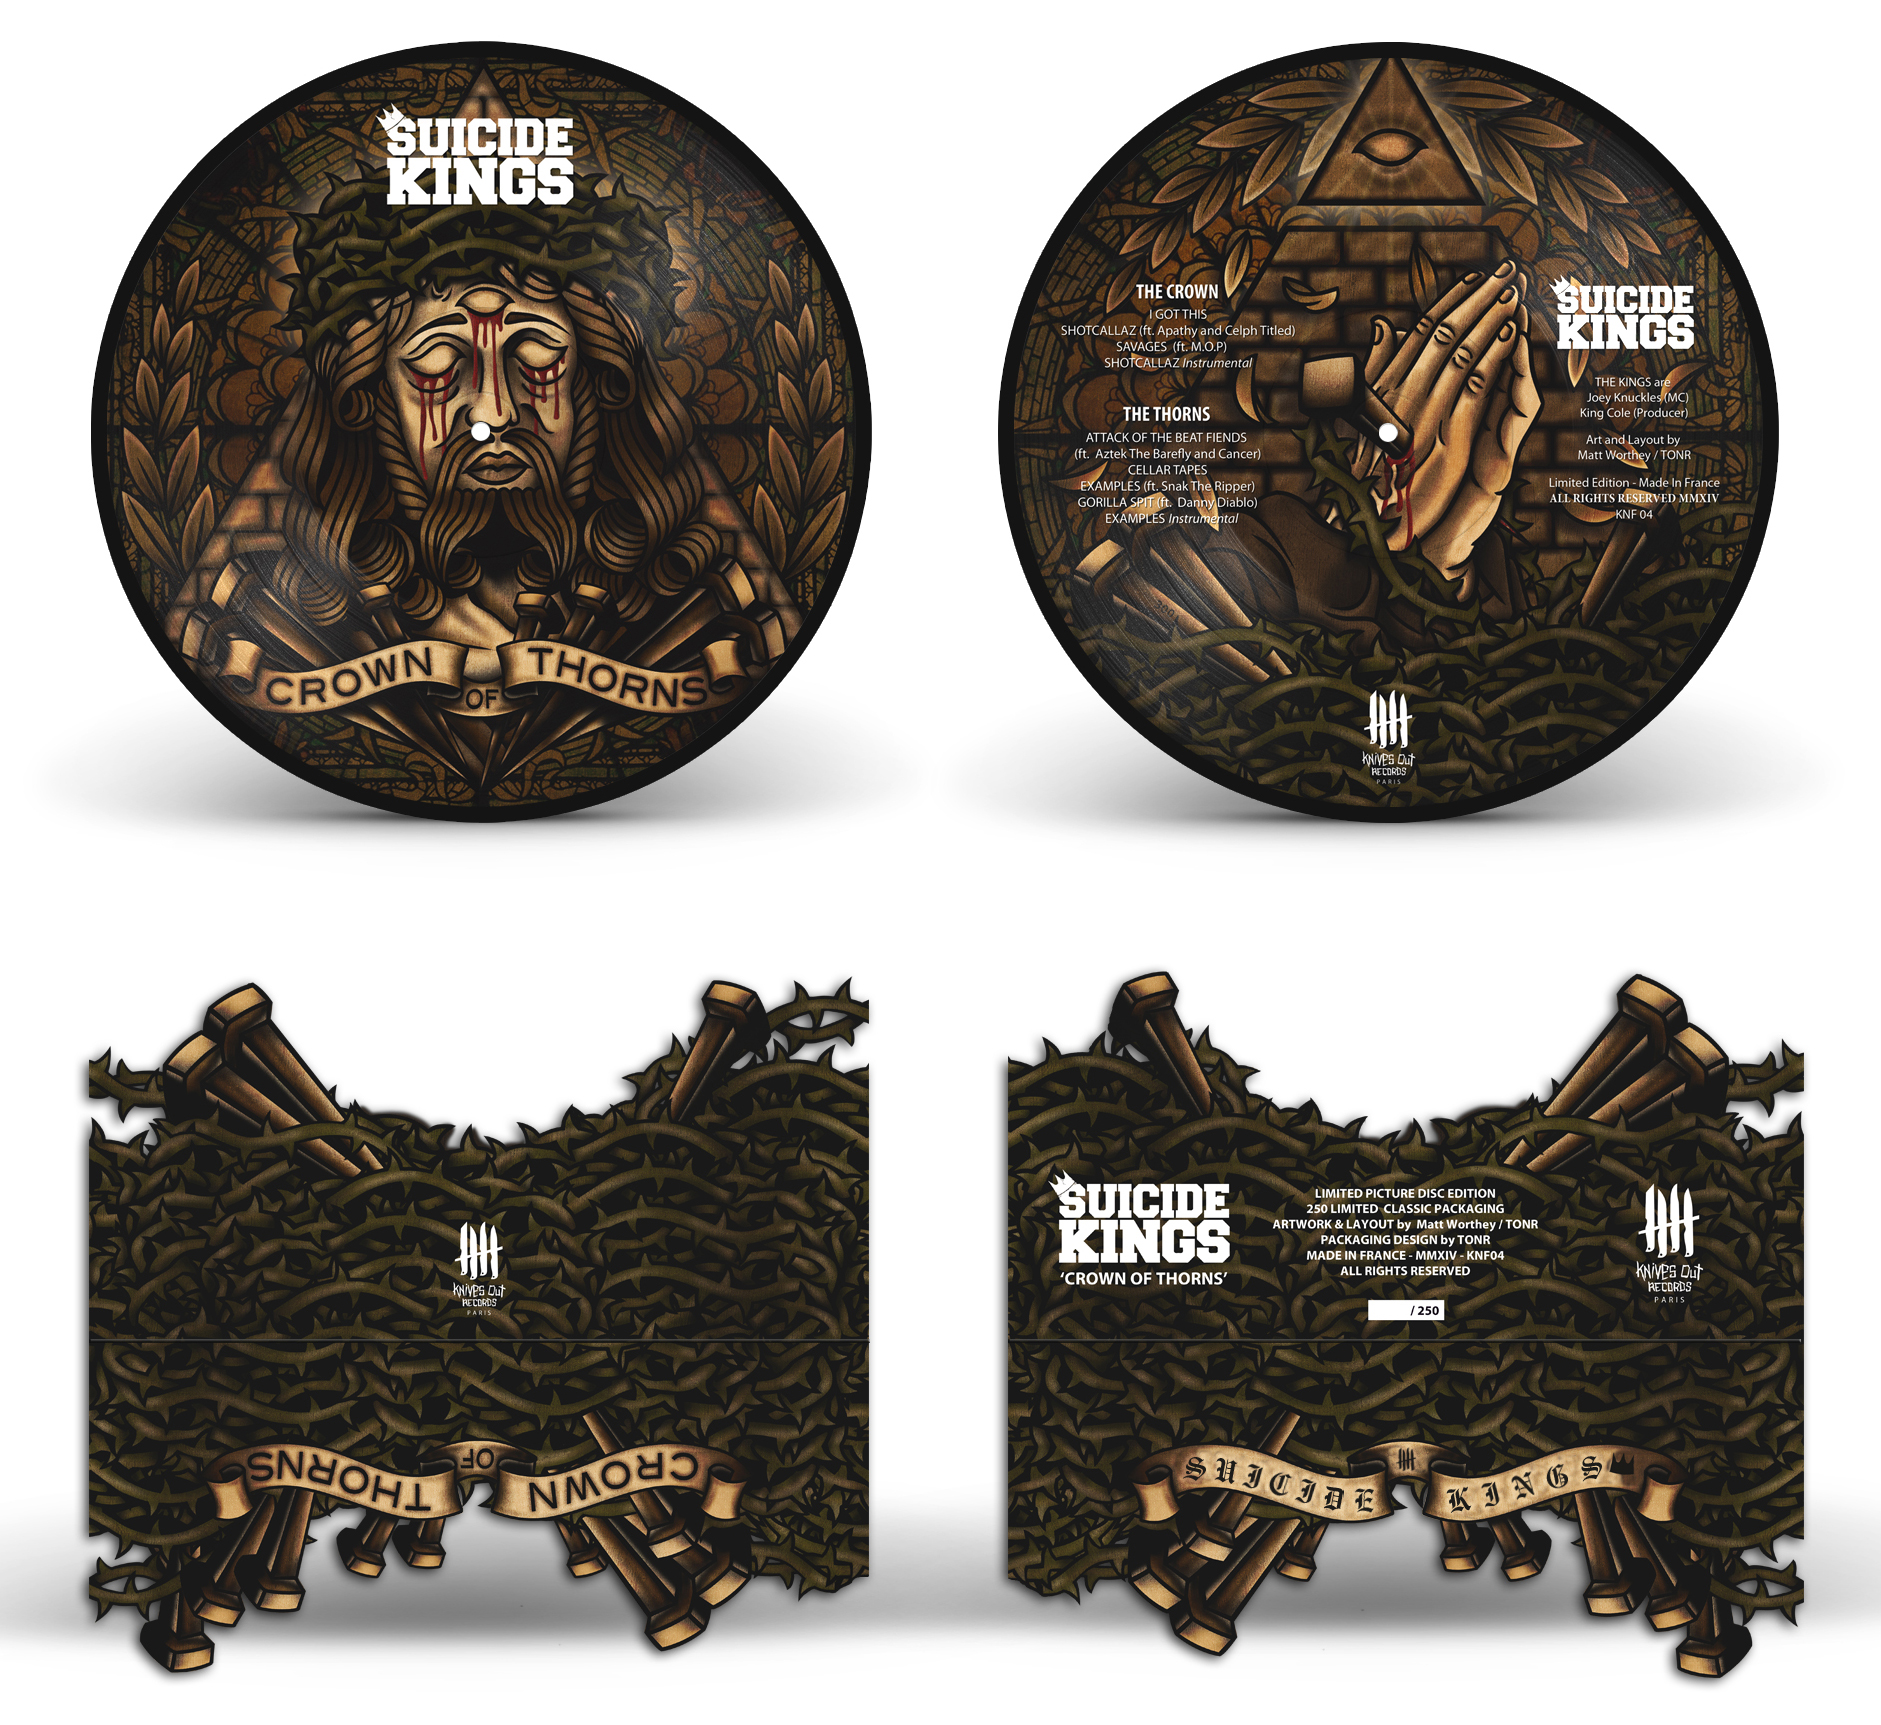 SUICIDE KINGS Crown Of Thorn classic picture disc packaging edition